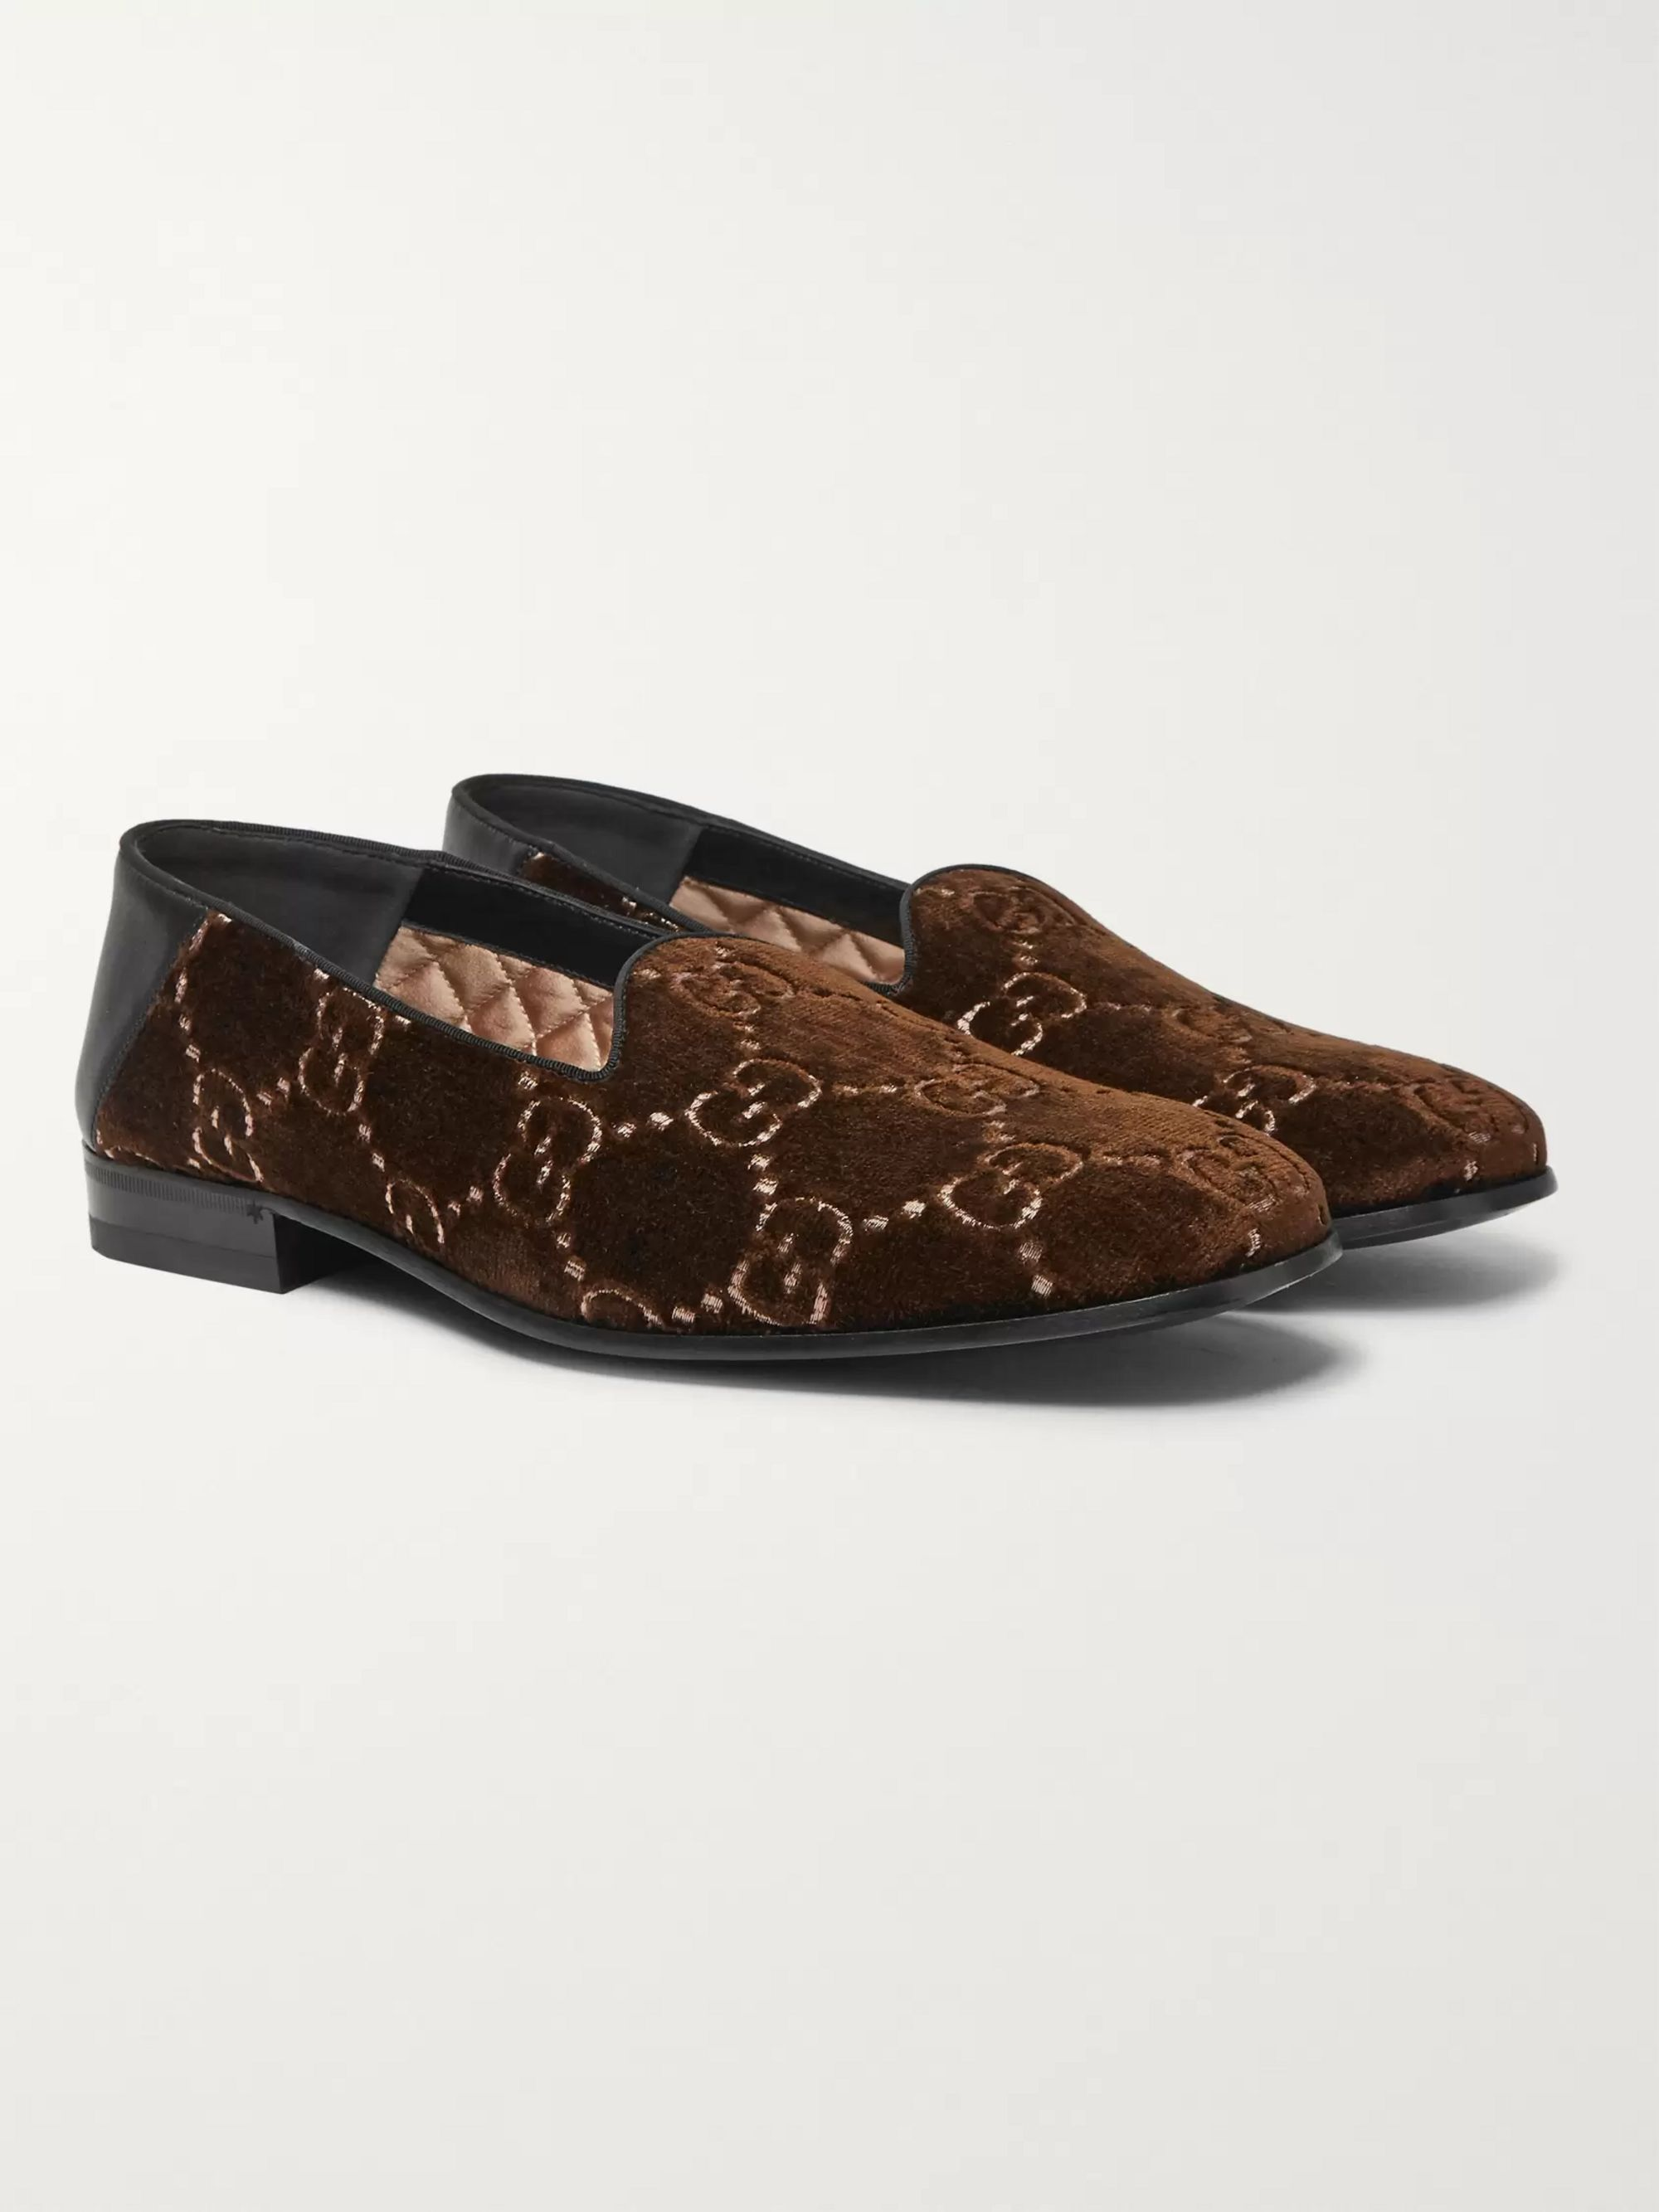 Gucci Gallipoli Collapsible-Heel Leather-Trimmed Embroidered Velvet Loafers